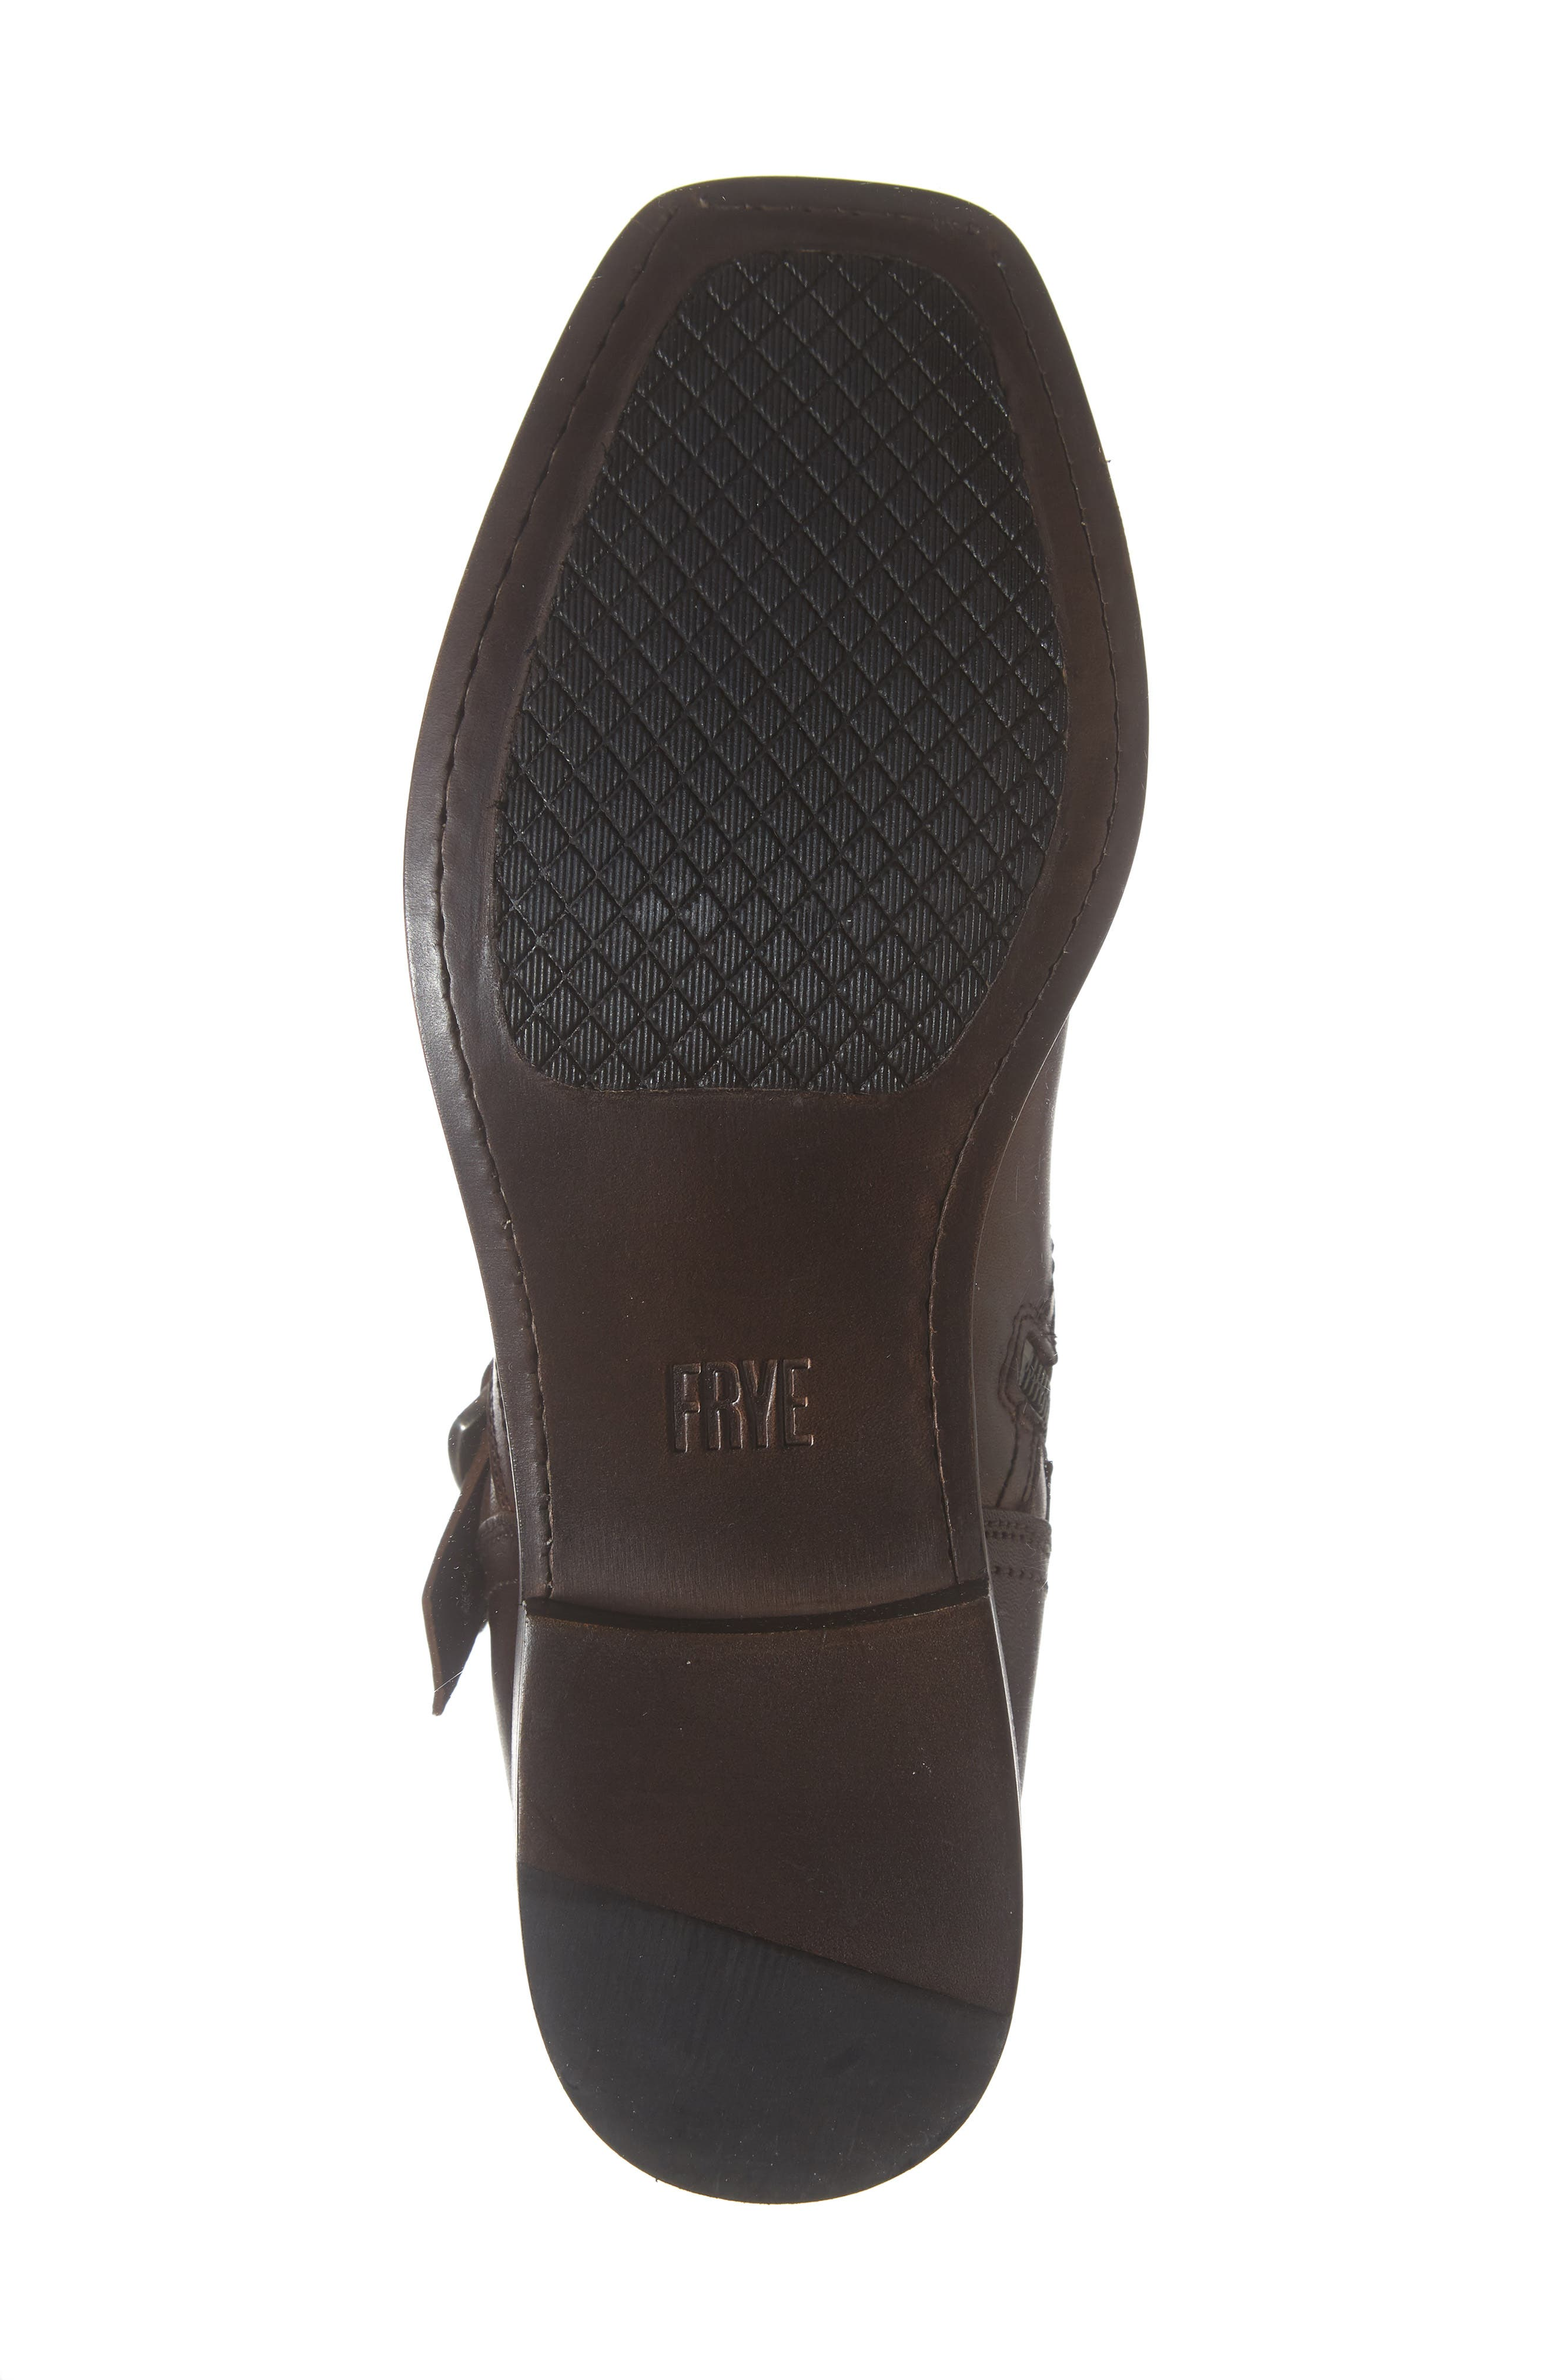 Smith Engineer Boot,                             Alternate thumbnail 6, color,                             BROWN